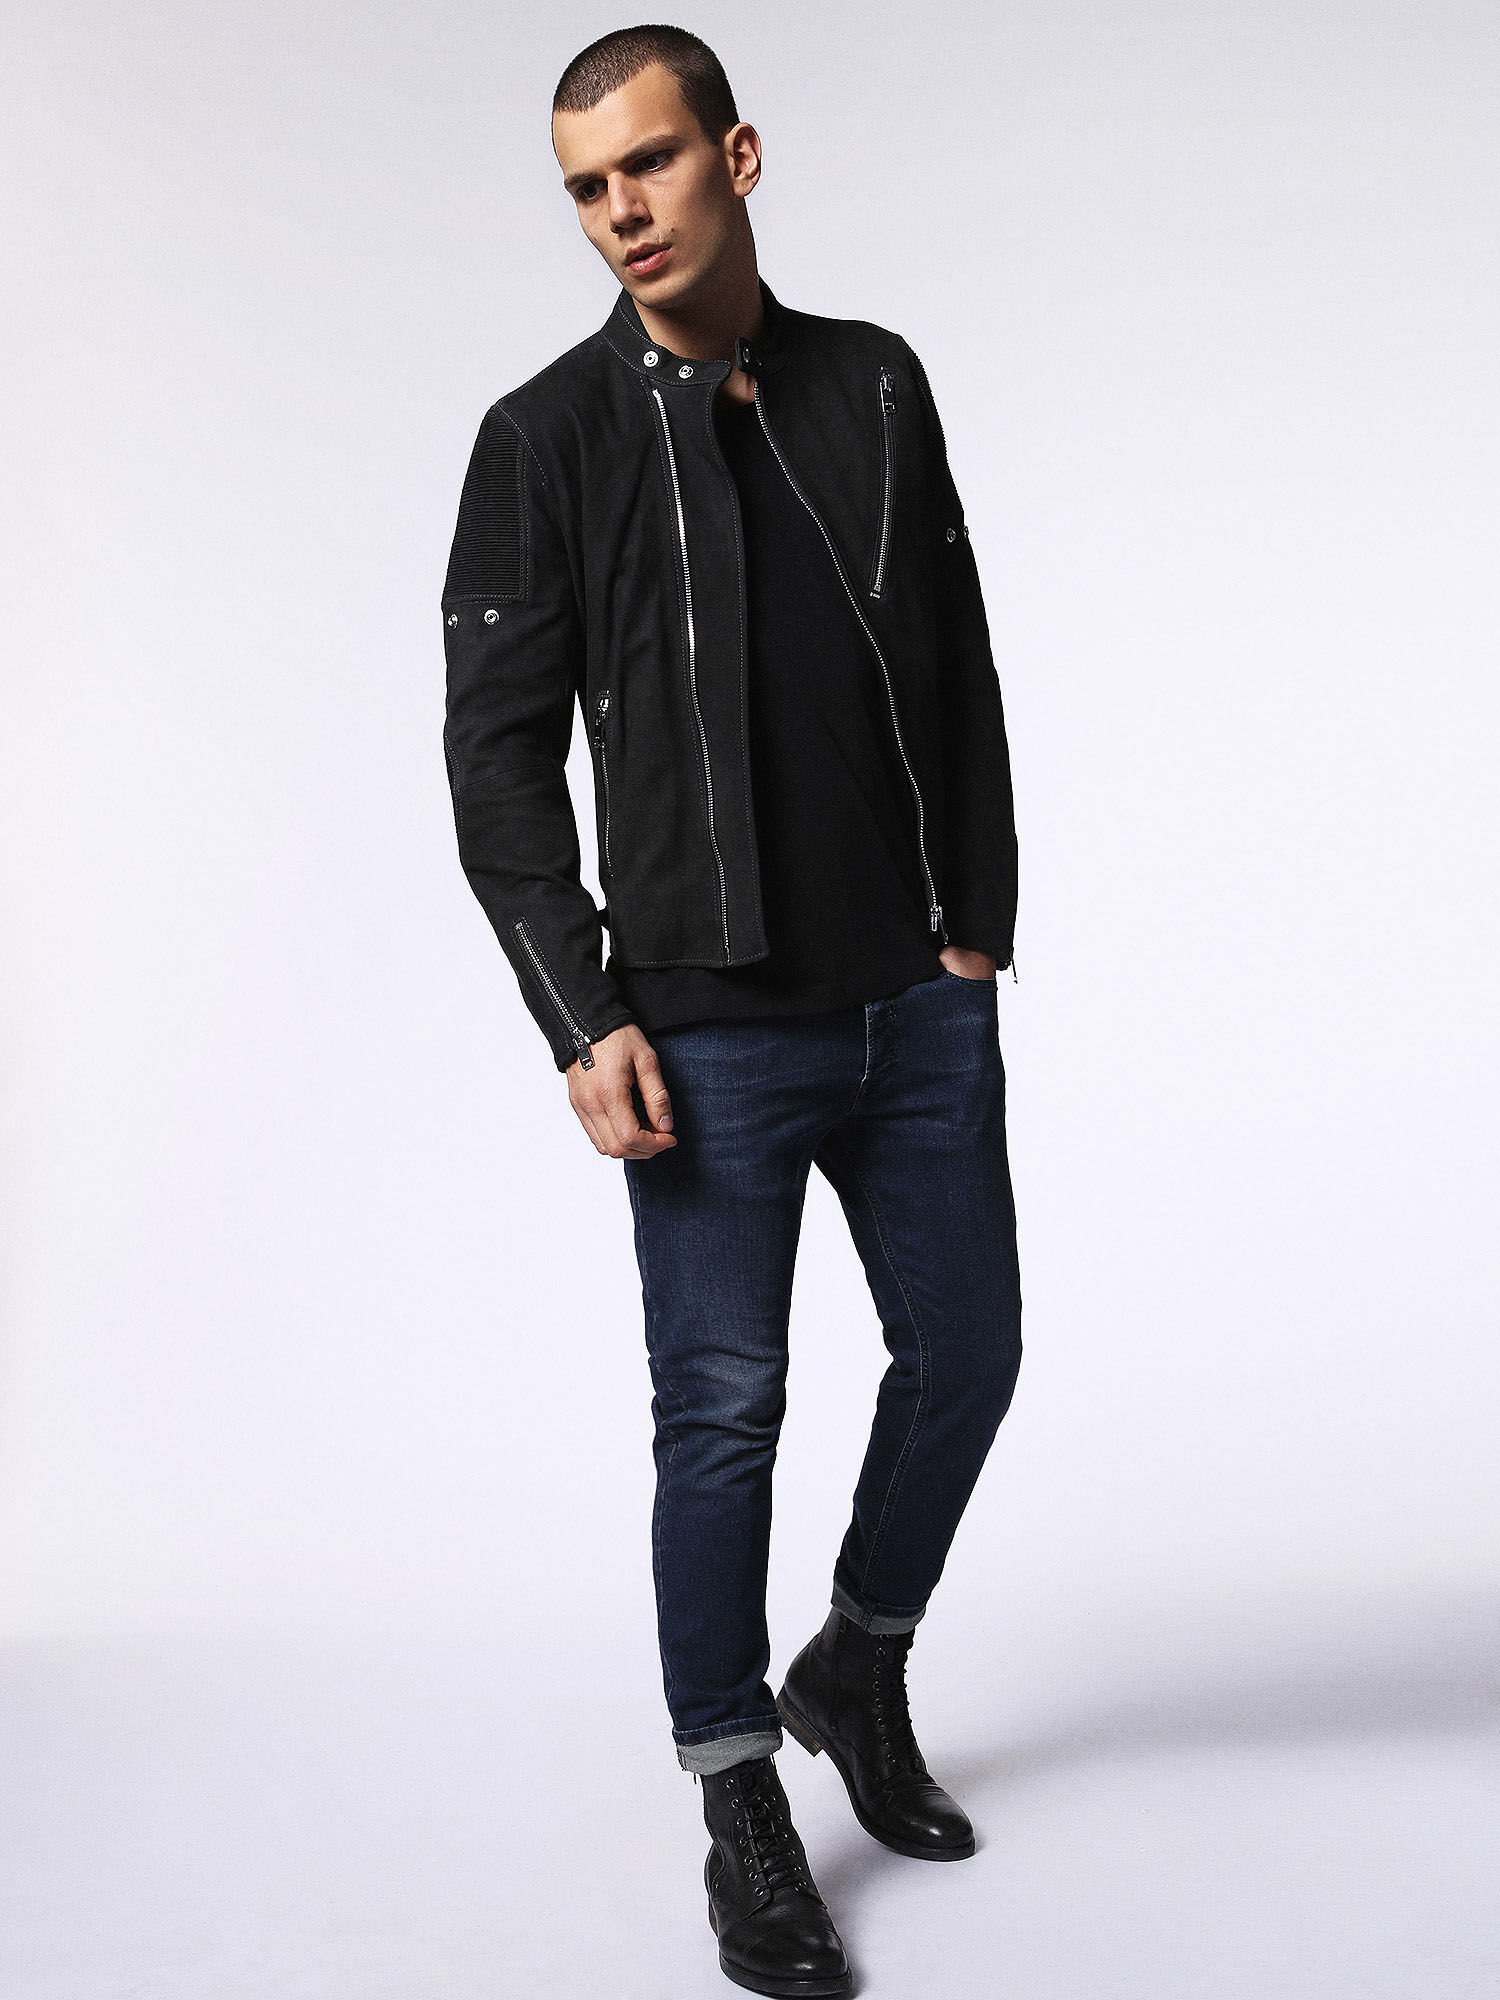 00SVIV0QAPA Leather jackets Man L-MACKSON by Diesel Black